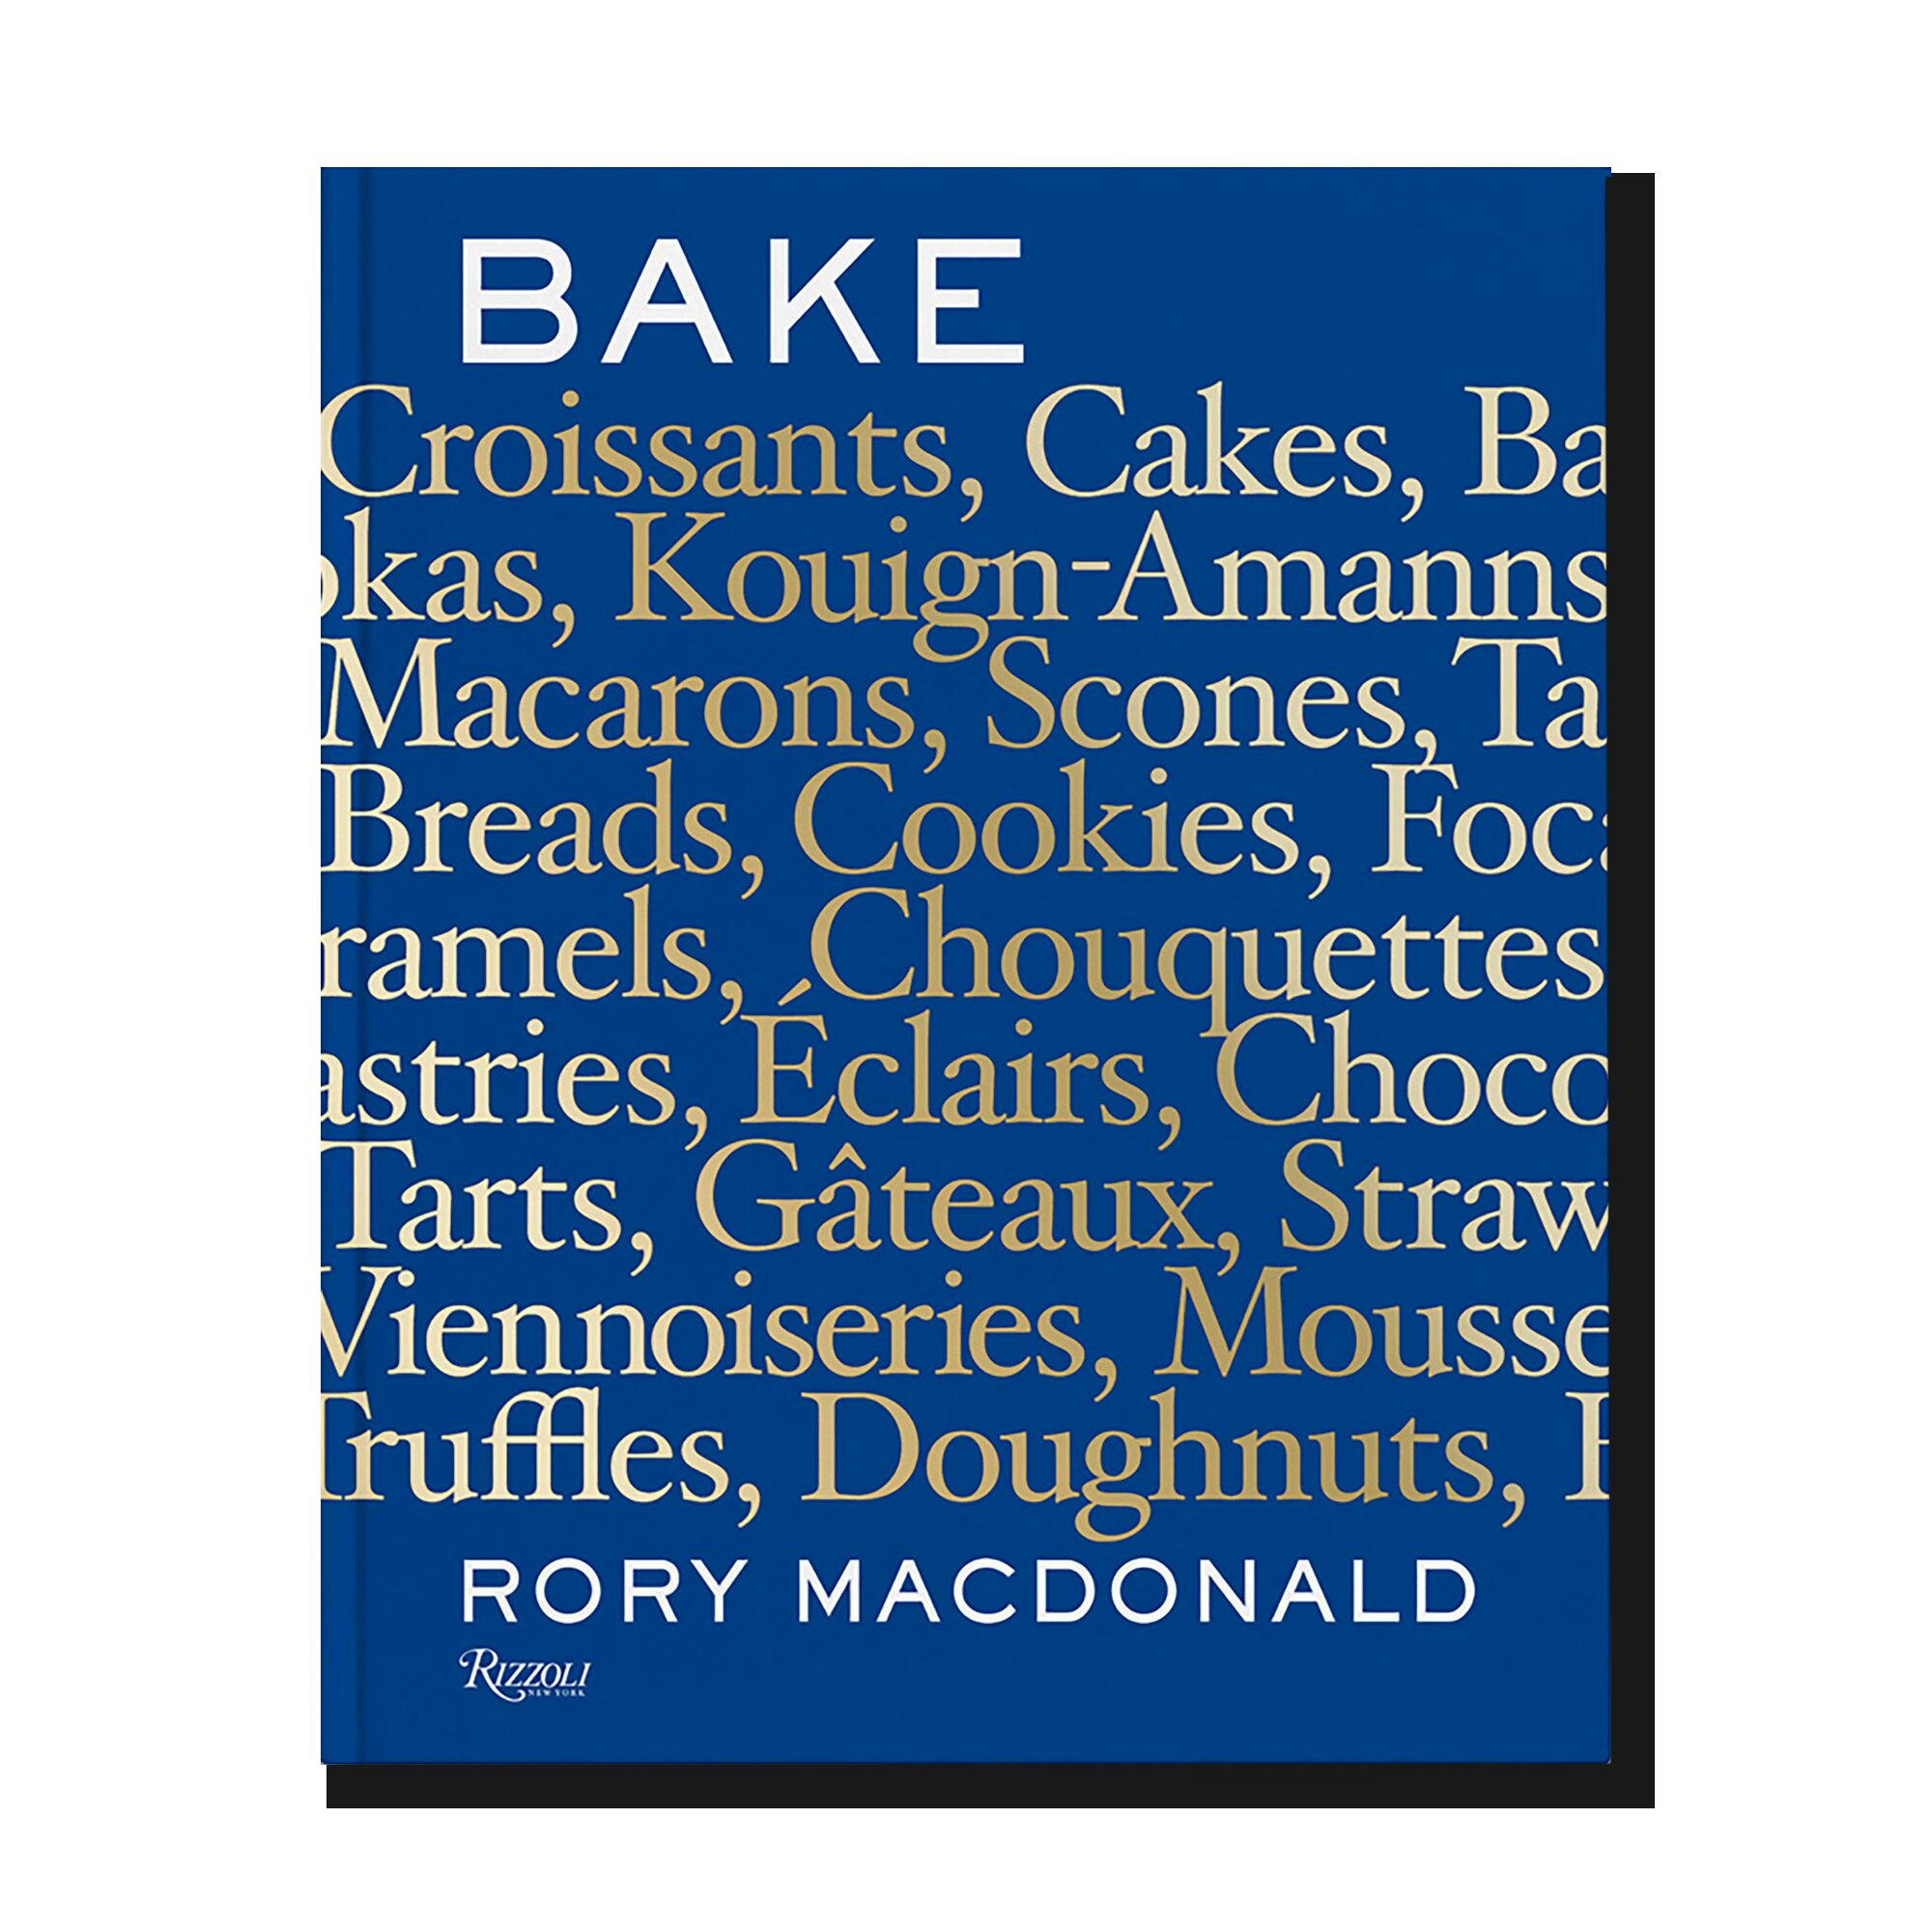 Bake: Breads, Cakes, Croissants